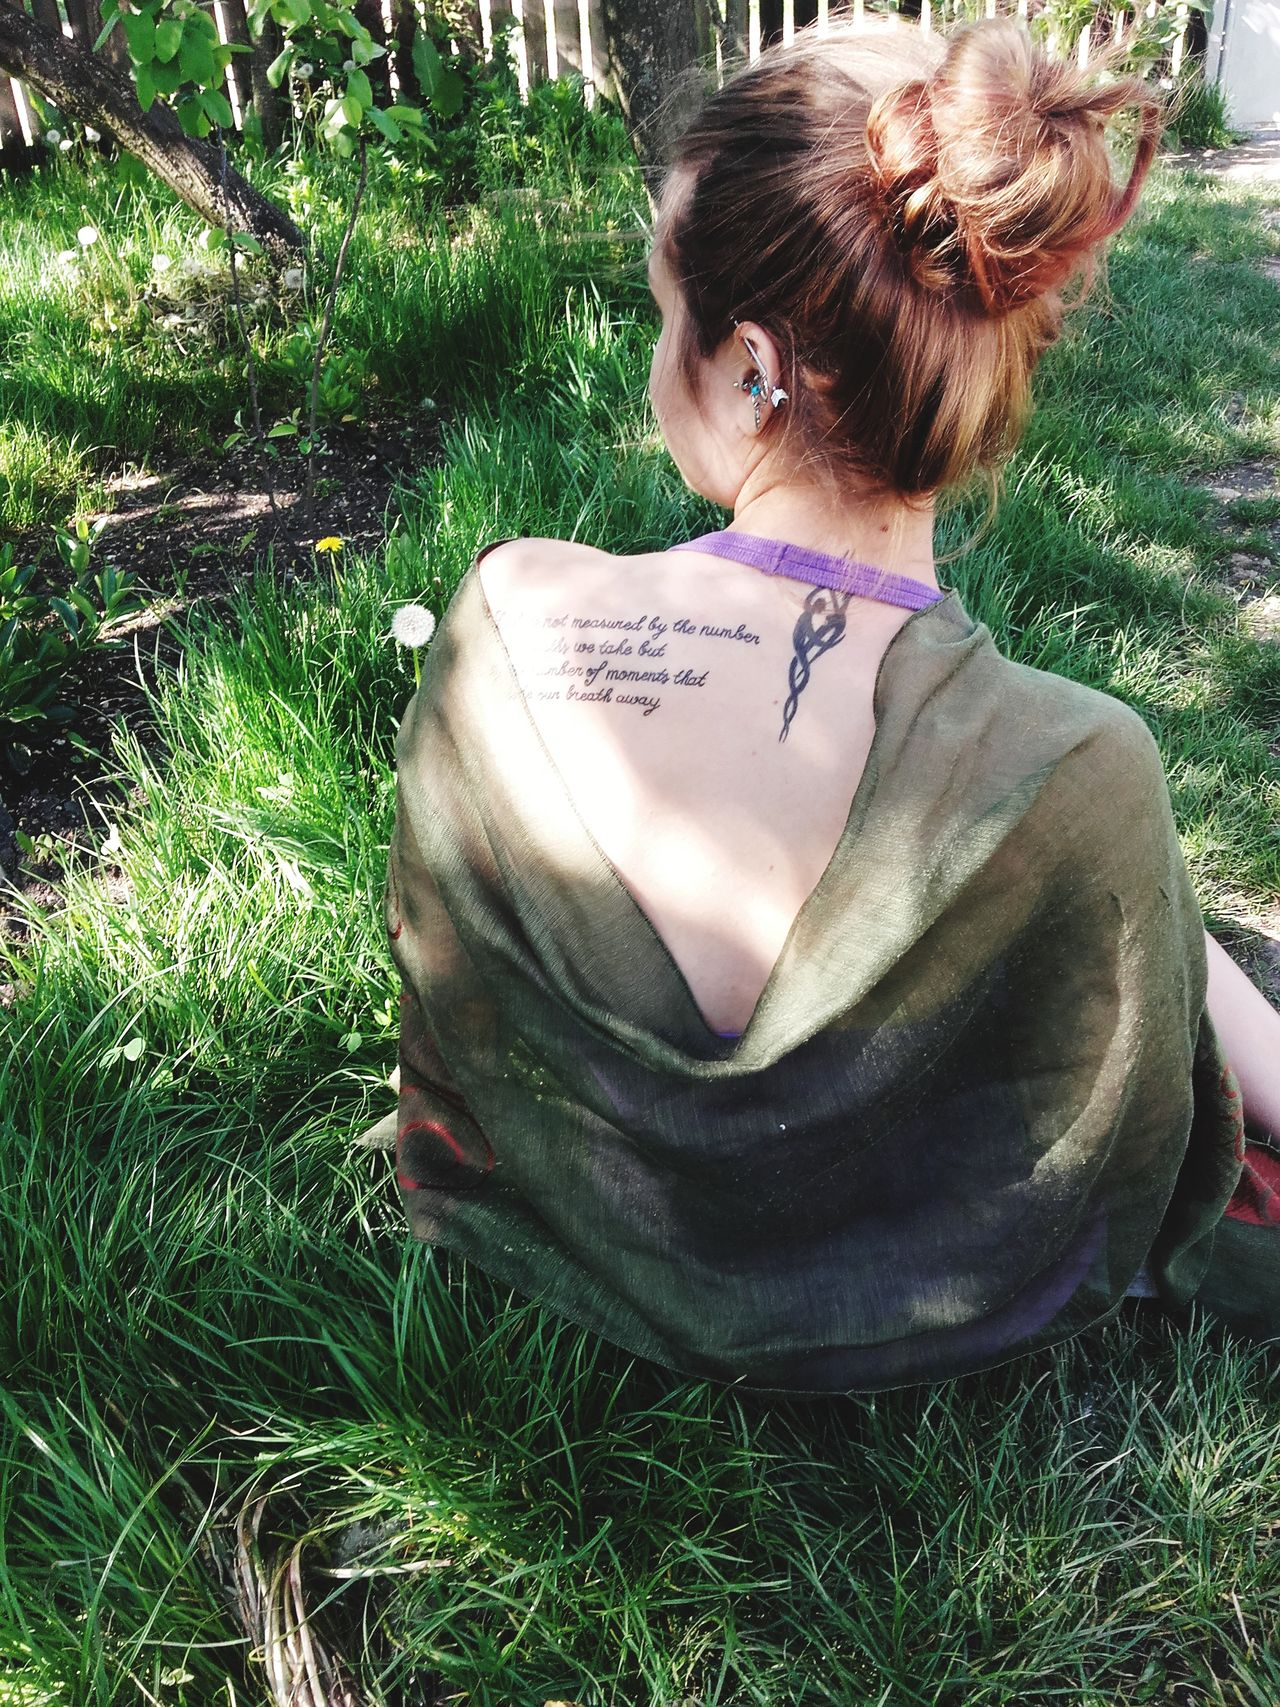 Young Adult Tattooedgirls Tattoolife Rear View Outdoors